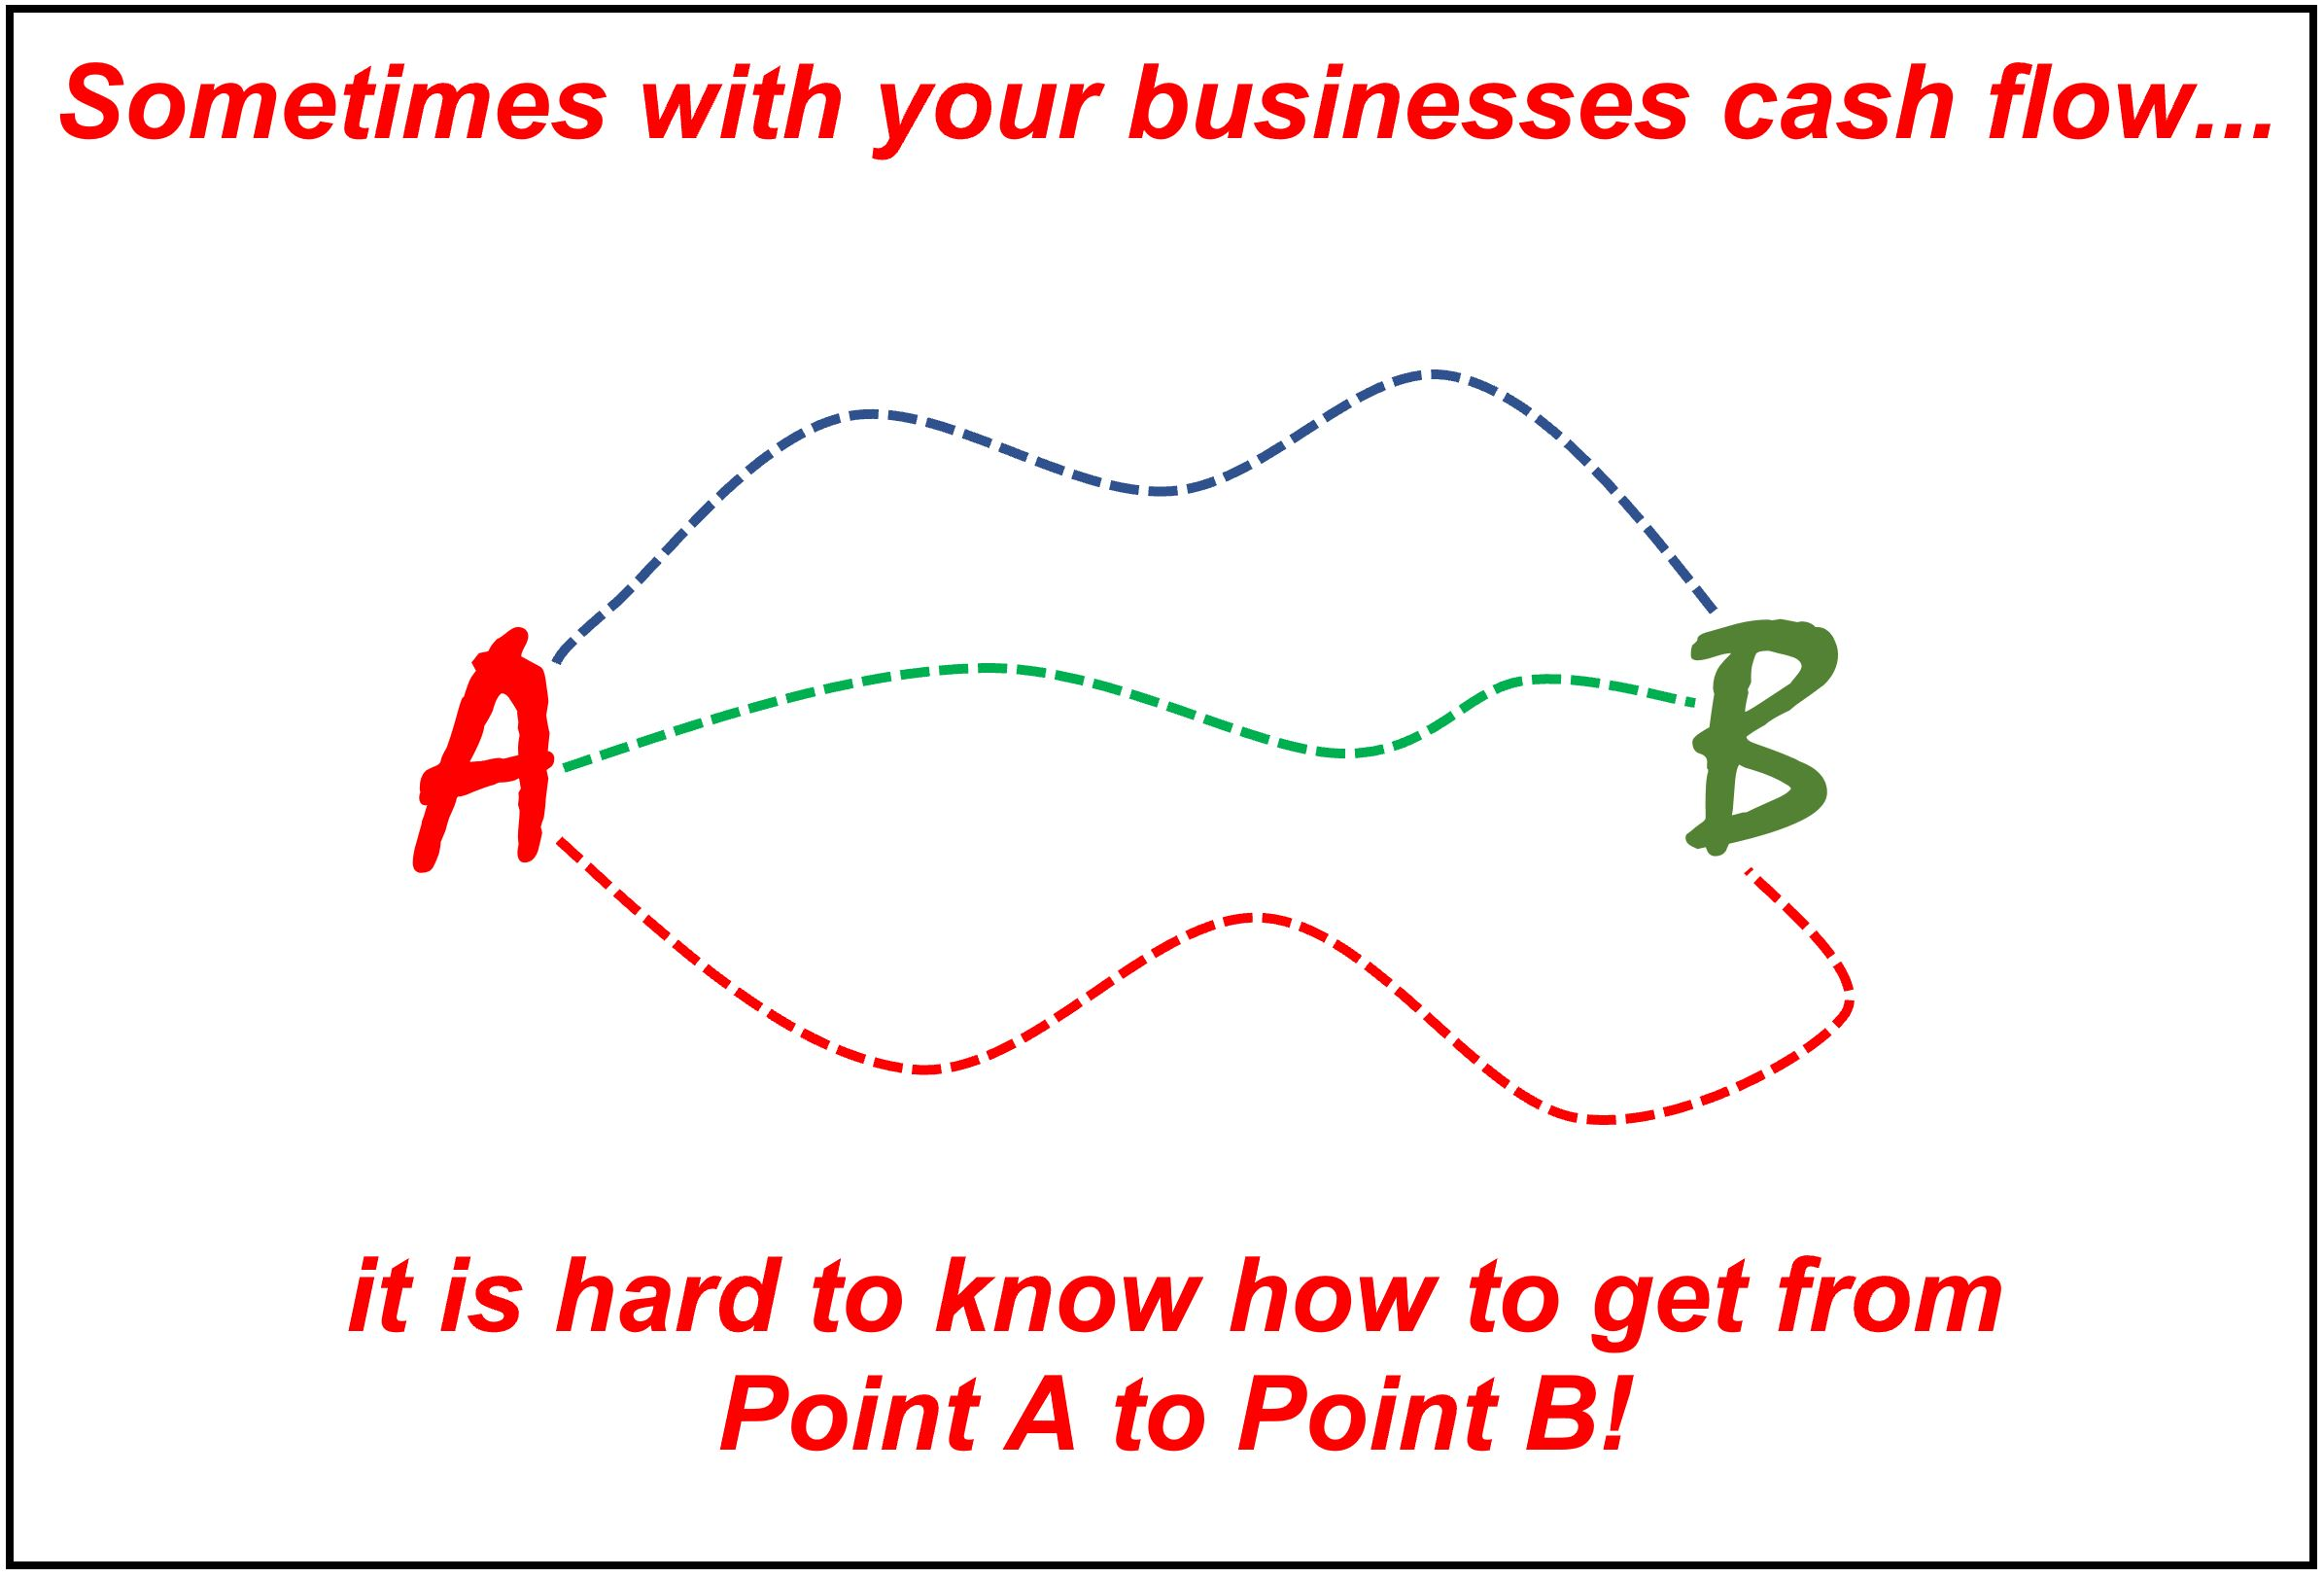 Factoring, Equipment Loans, Bridge or Term Loans, Lines of Credit and Many Other Types of Financing 11